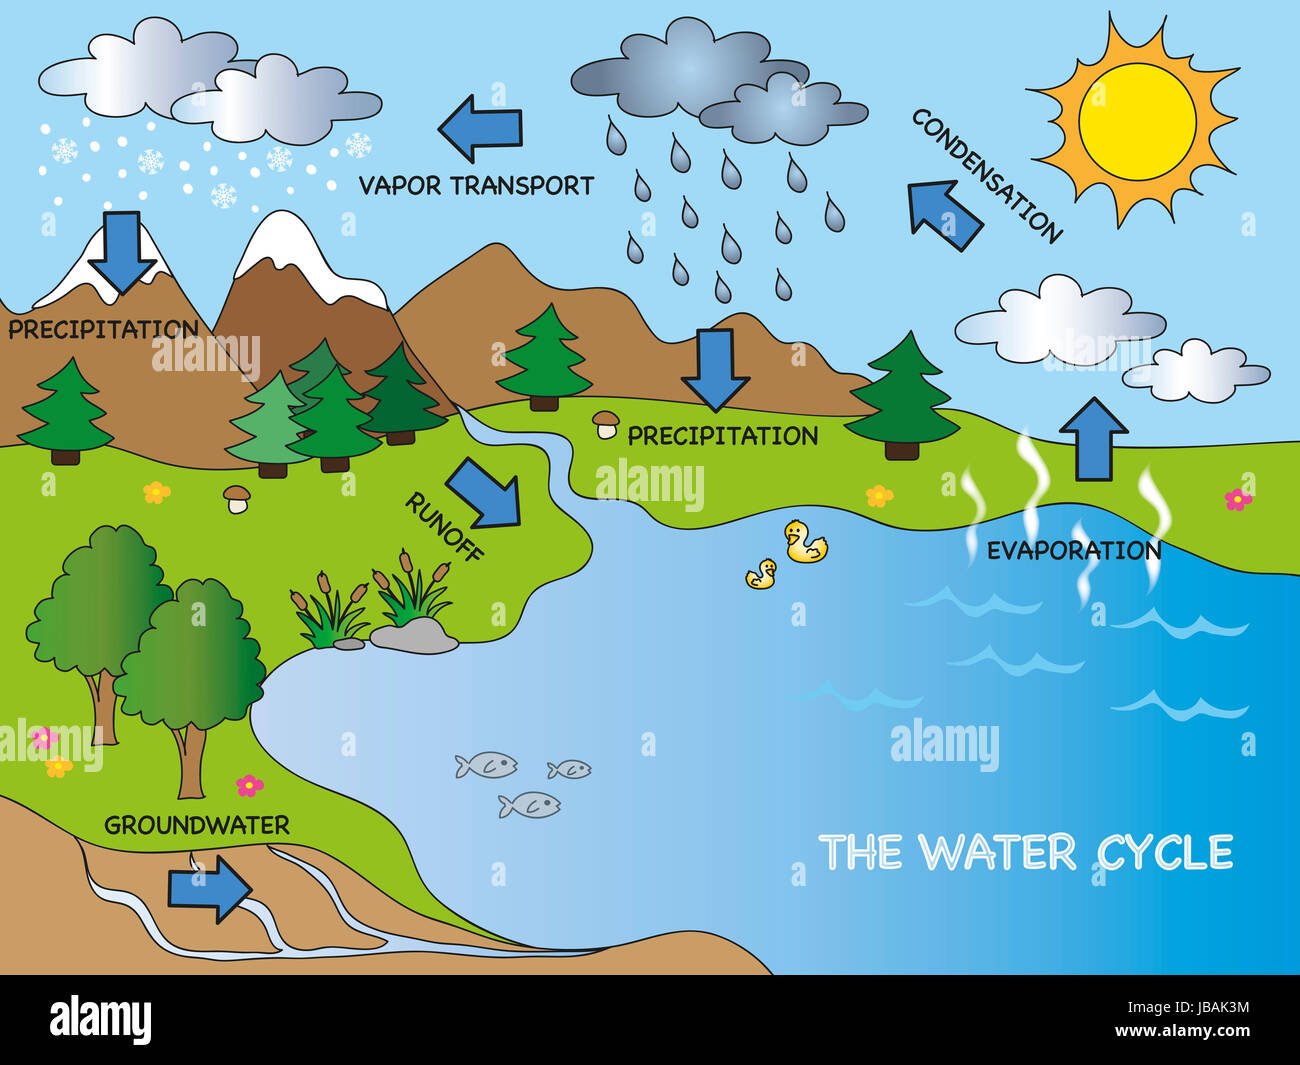 hight resolution of la water cycle diagram wiring diagram used la water cycle diagram